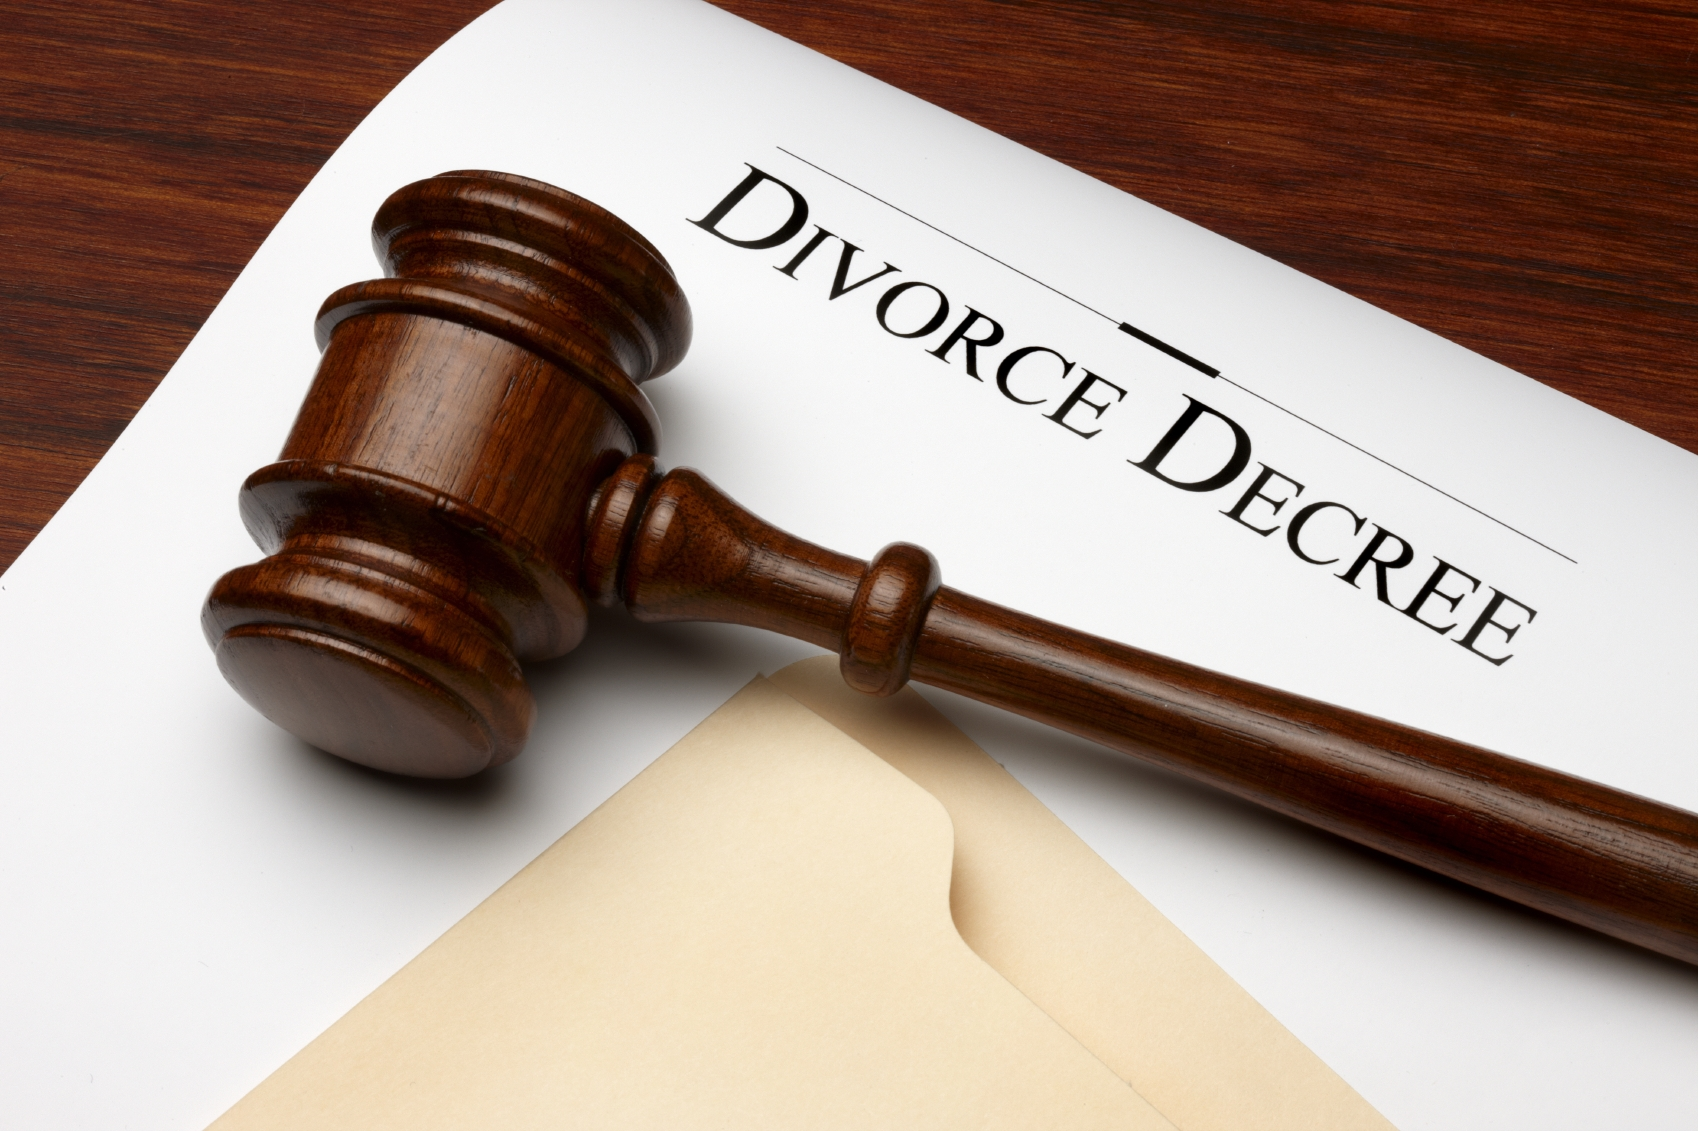 Is a Domestic Partnership Formed in Another State Recognized By California?